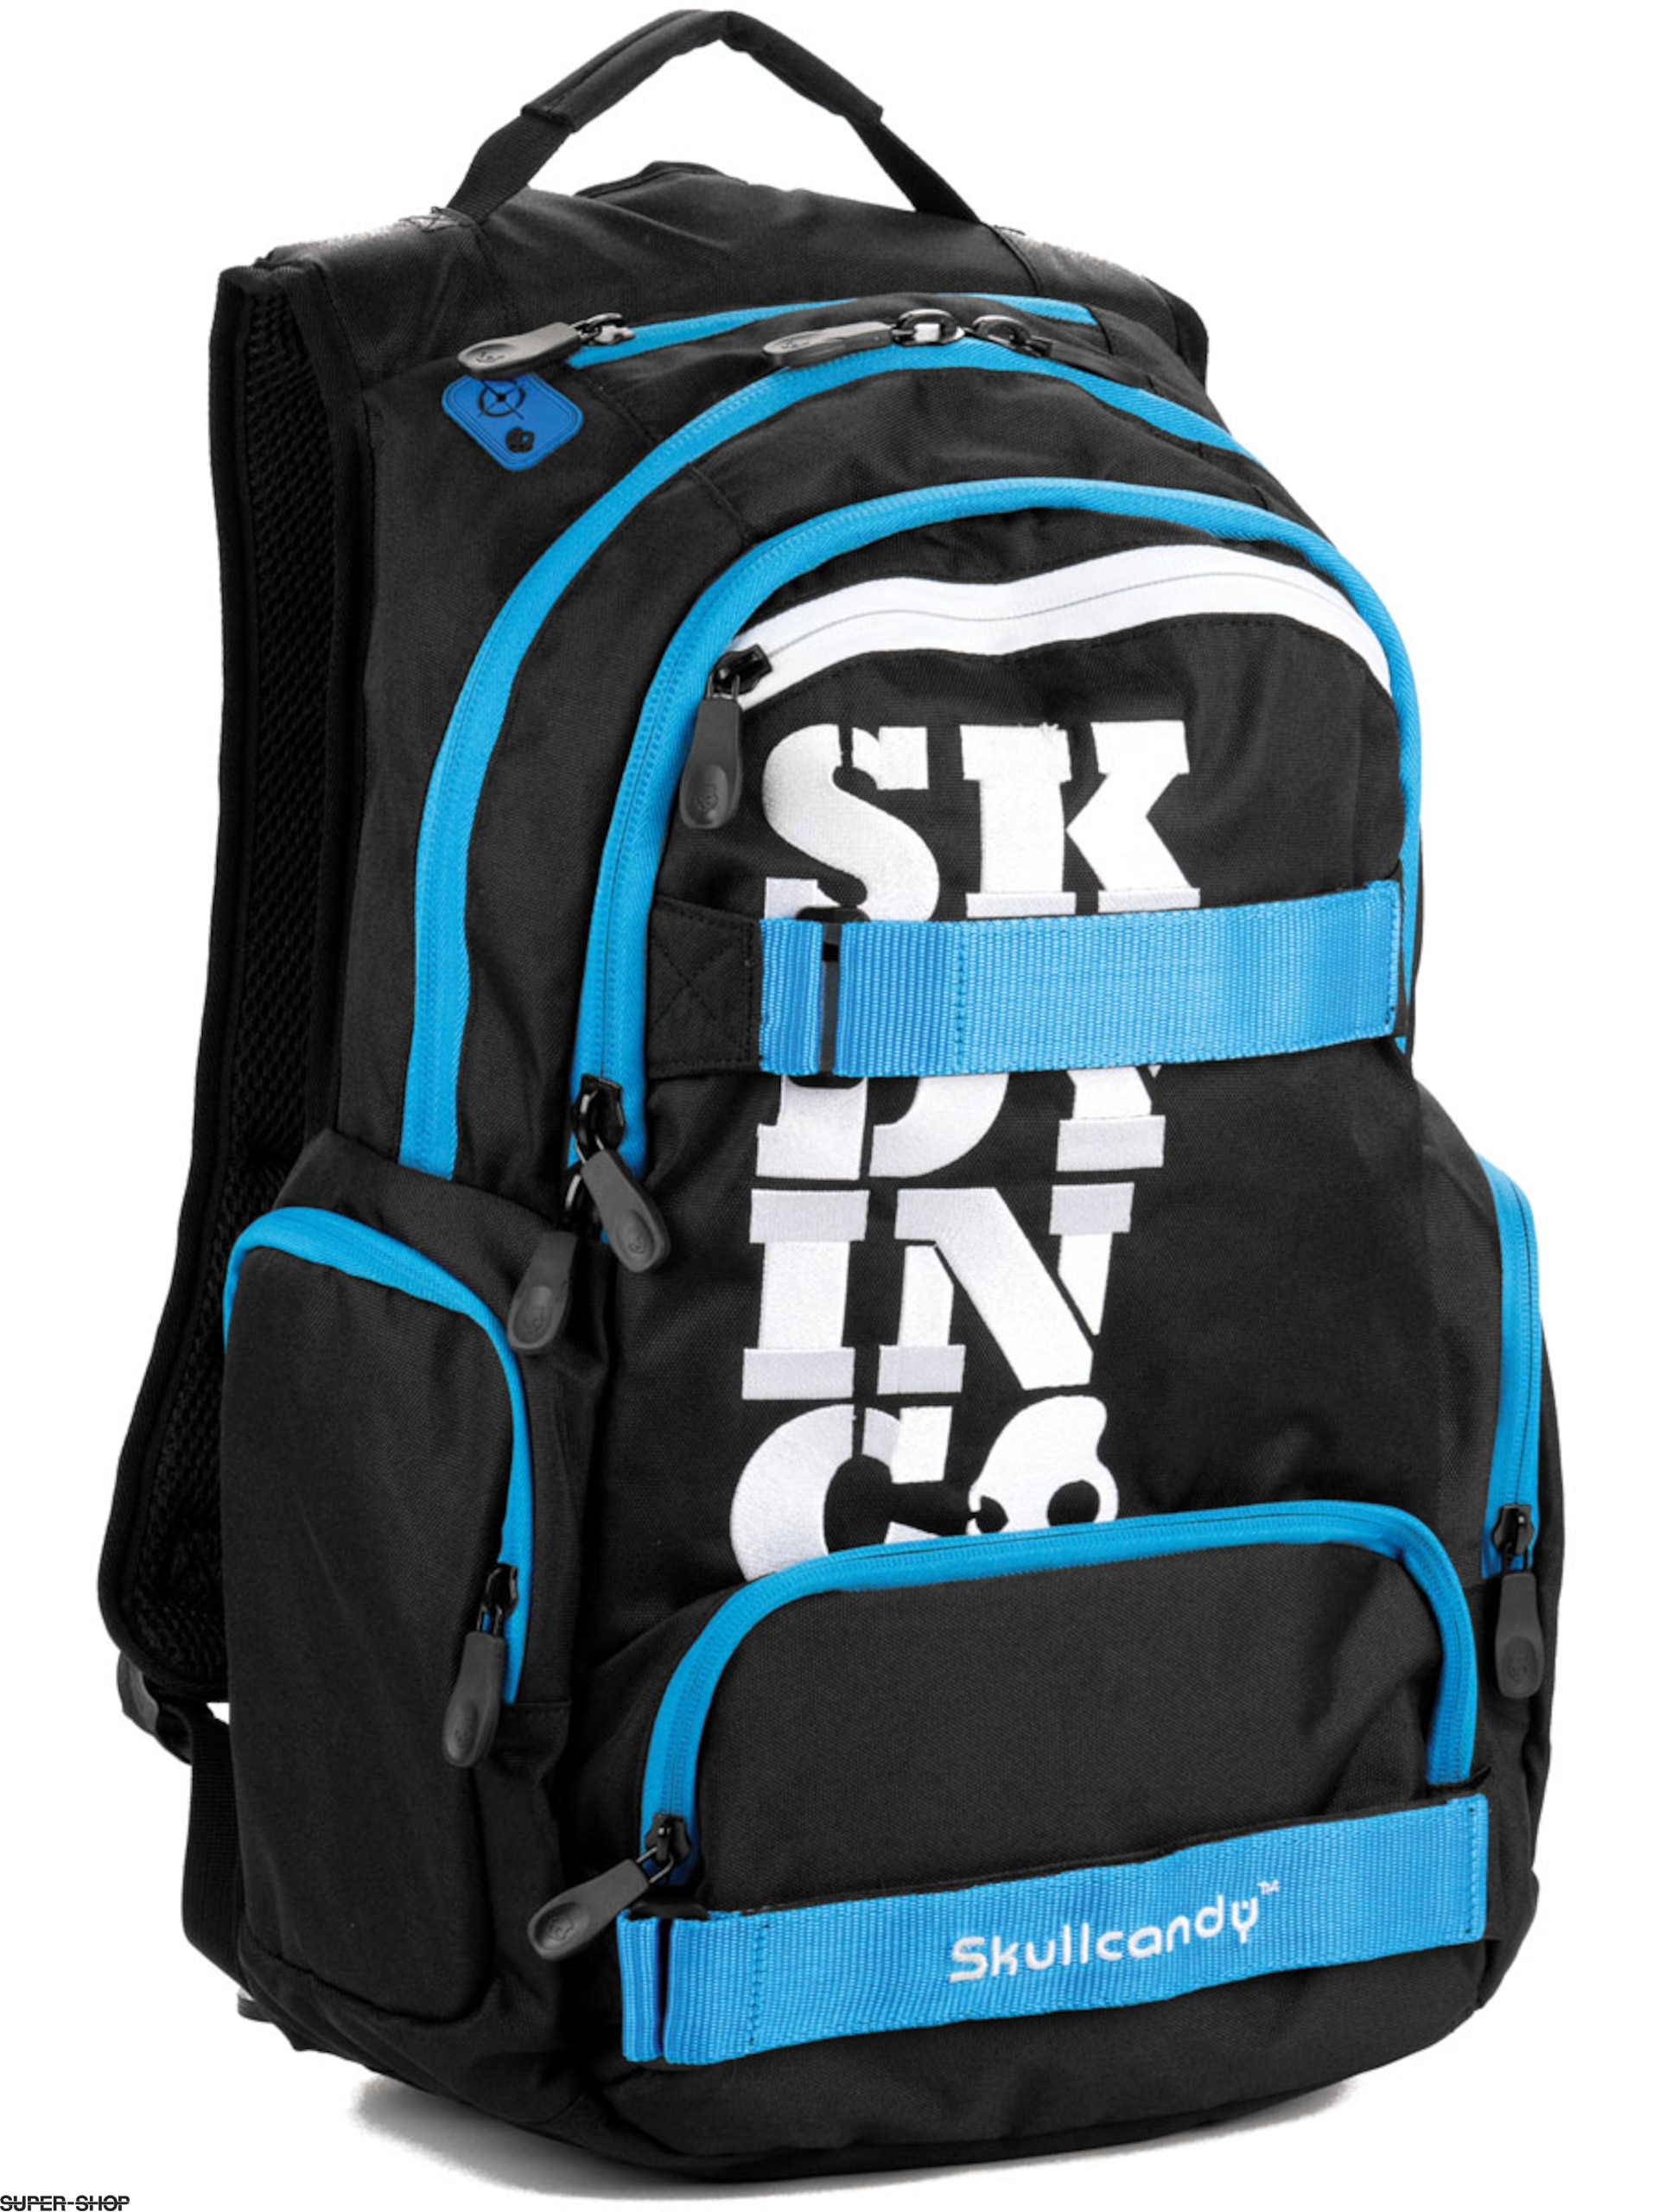 Skullcandy dream team skate backpack black jpg 900x1200 Skullcandy black  backpacks skateboard d18ece95caef0